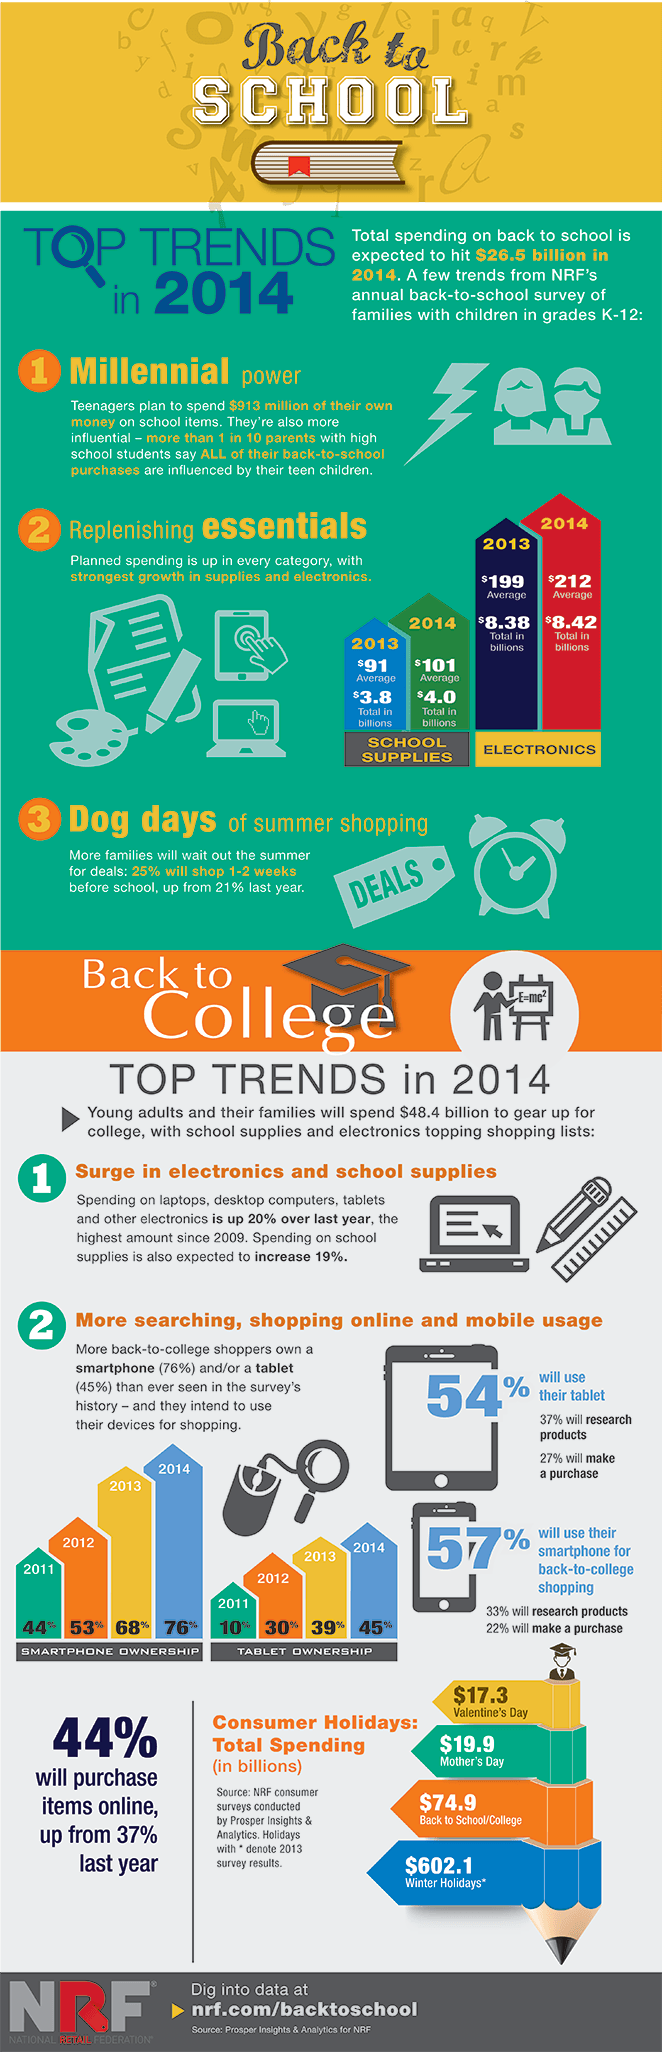 Top-2014-Back-To-School-And-College-Trends-Infographic